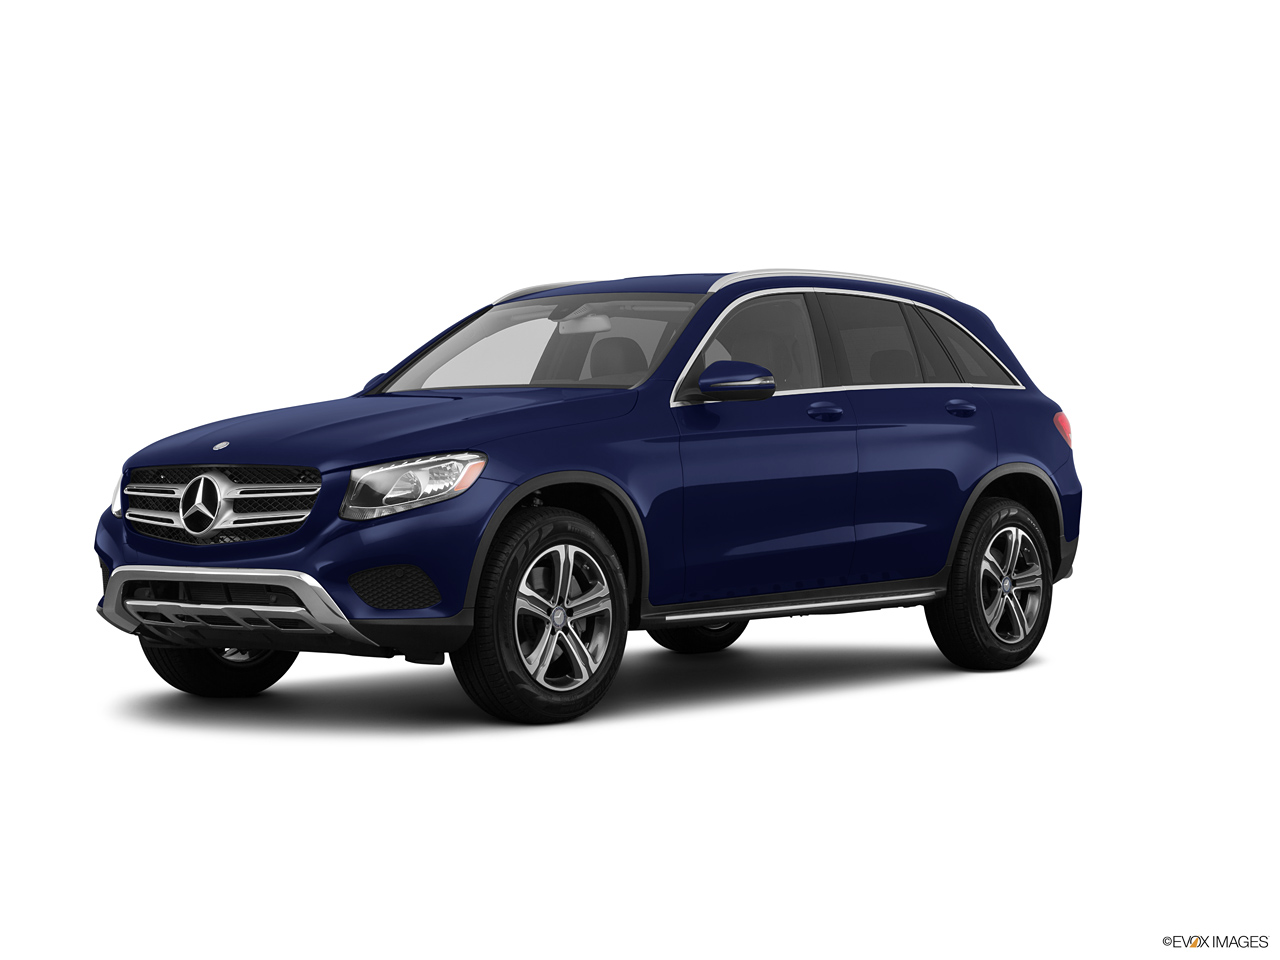 Car pictures list for mercedes benz glc class 2016 glc 250 for Mercedes benz classes list